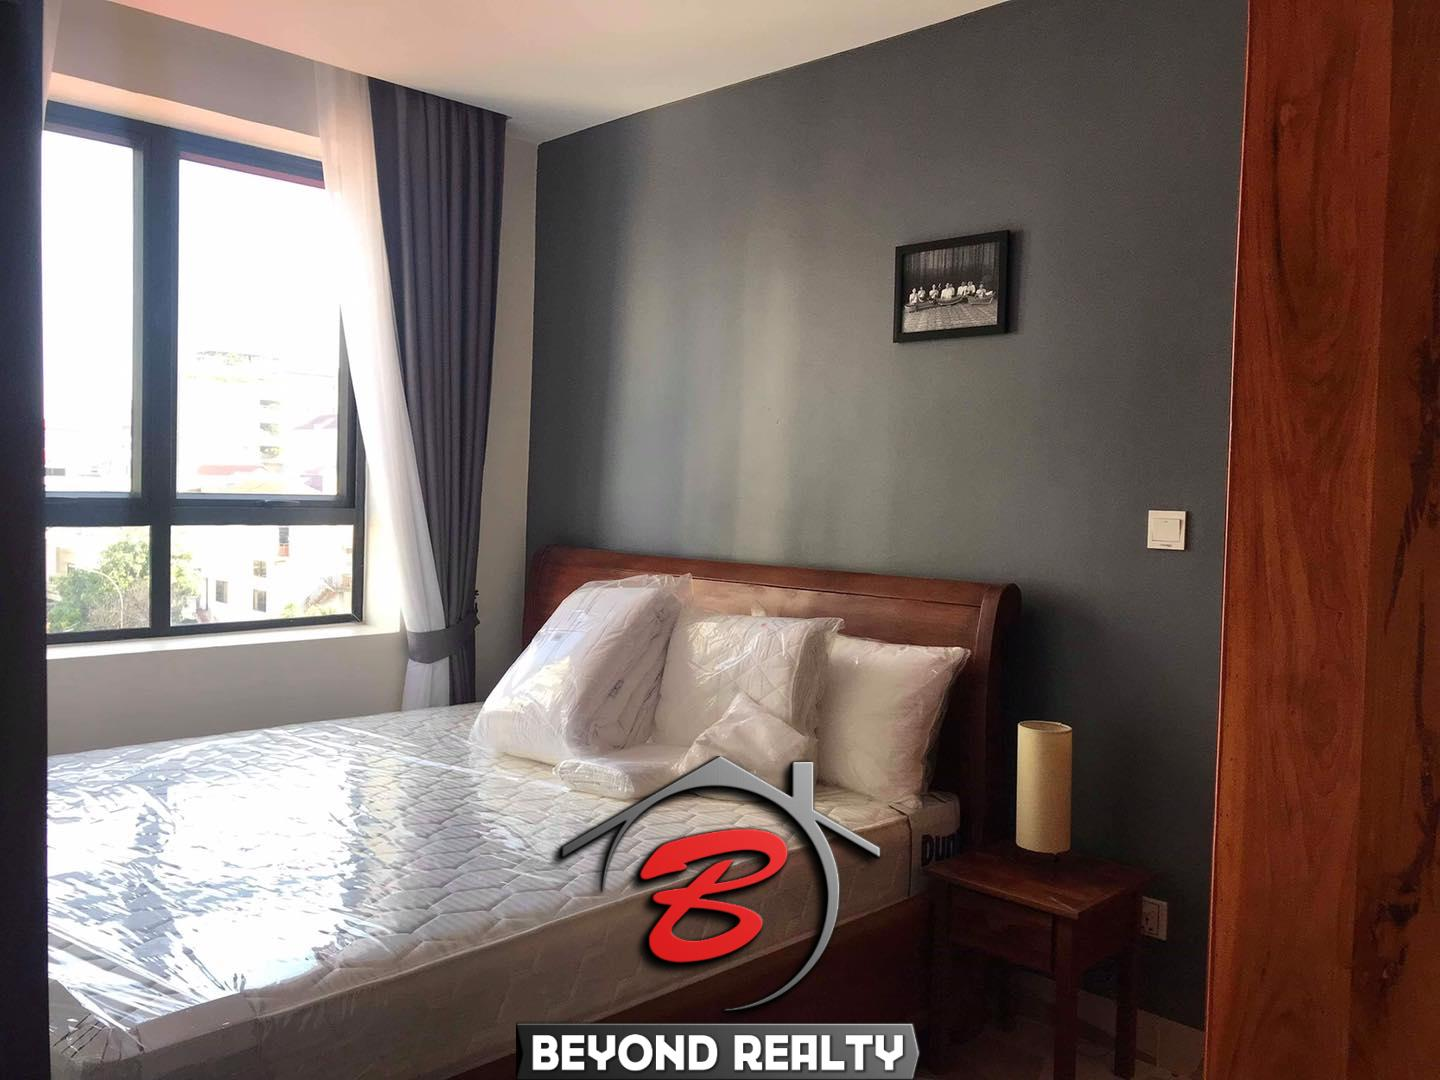 the bedroom of the 1-bedroom serviced apartment for rent in BKK3 in Phnom Penh Cambodia